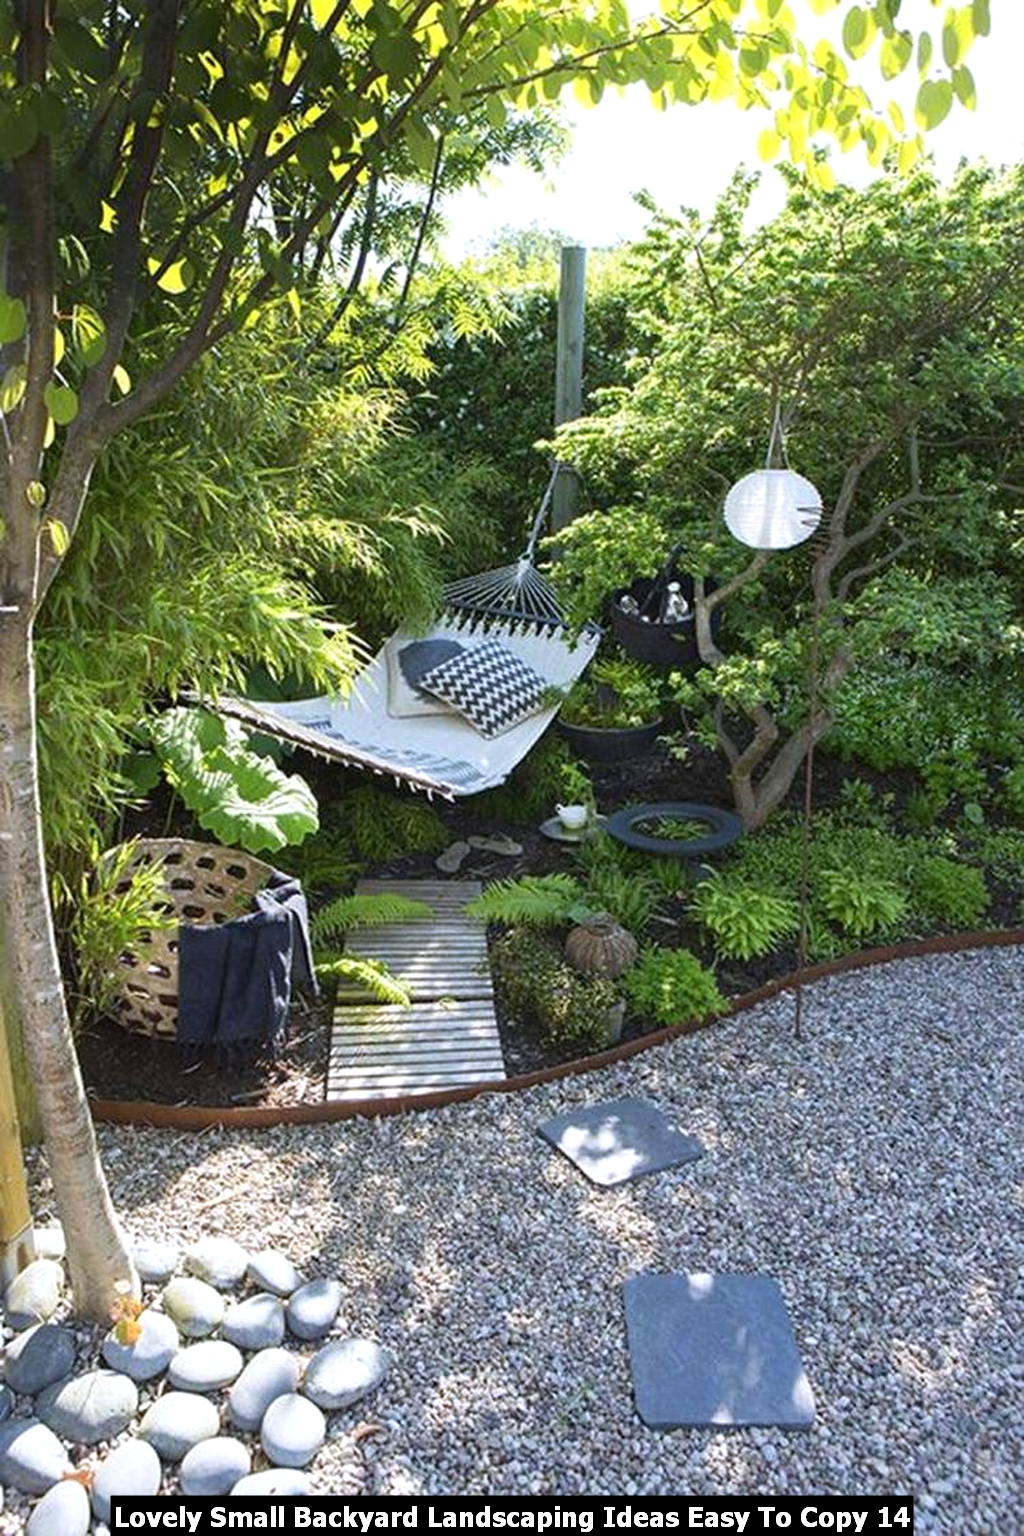 Lovely Small Backyard Landscaping Ideas Easy To Copy 14